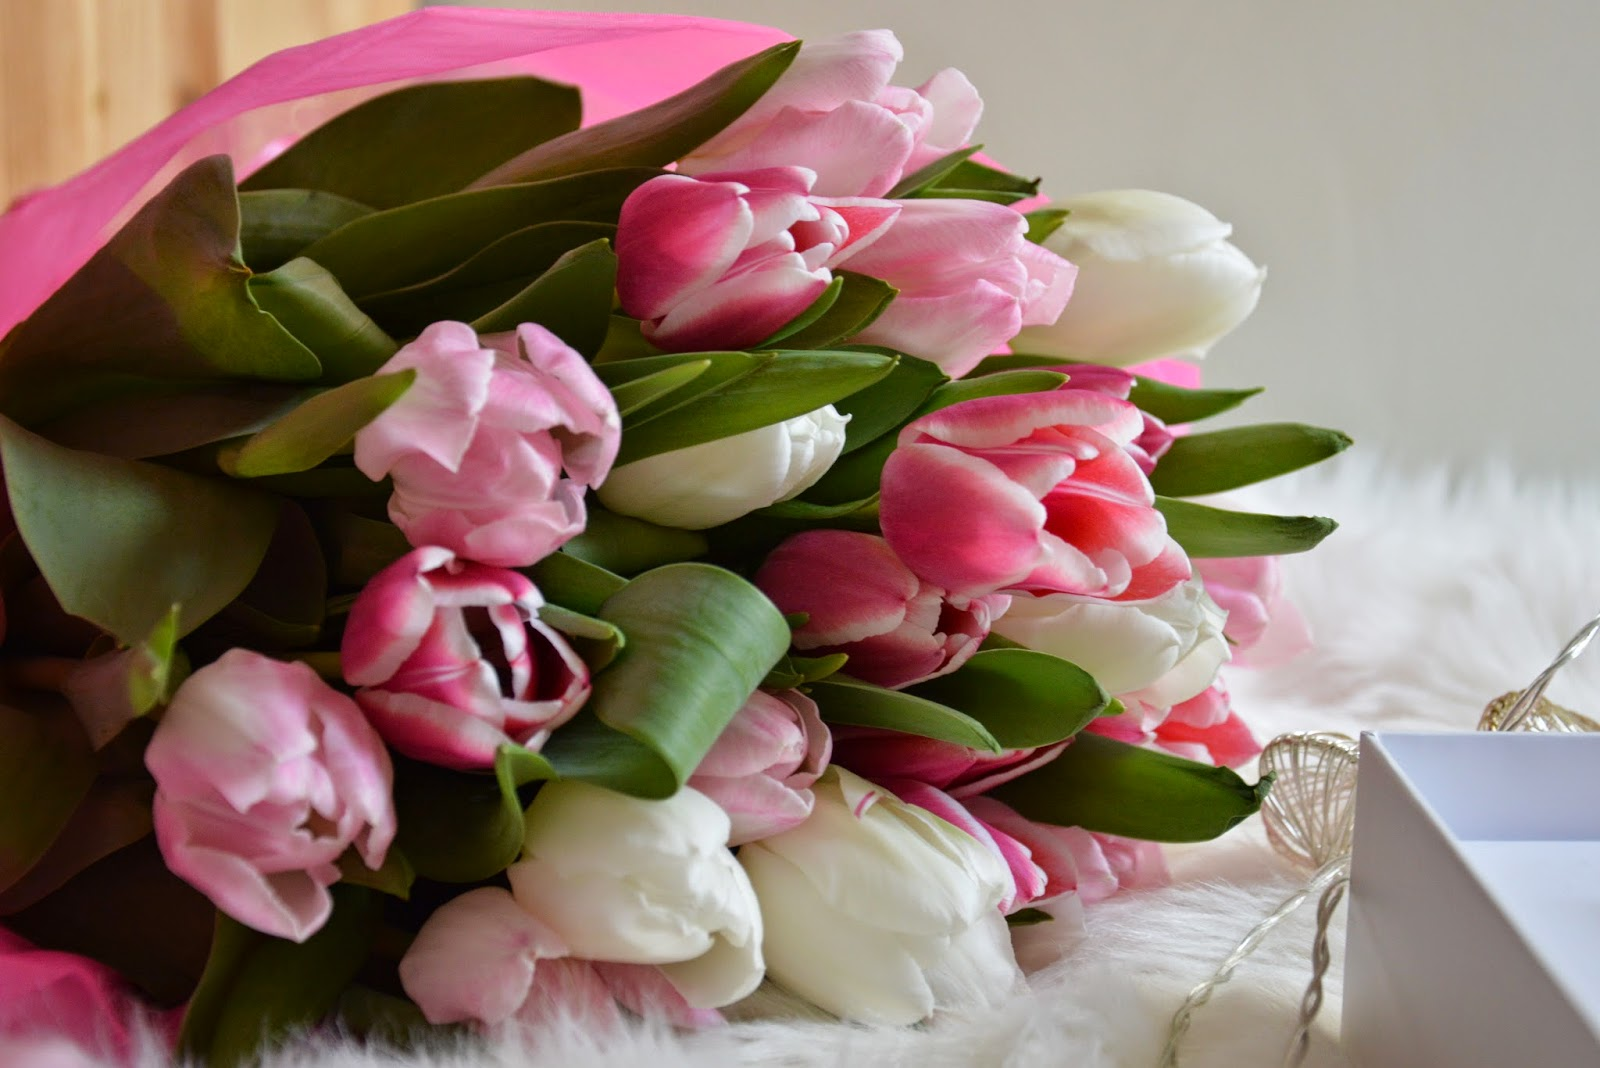 mothers day bouquet flowers florica tulips pink